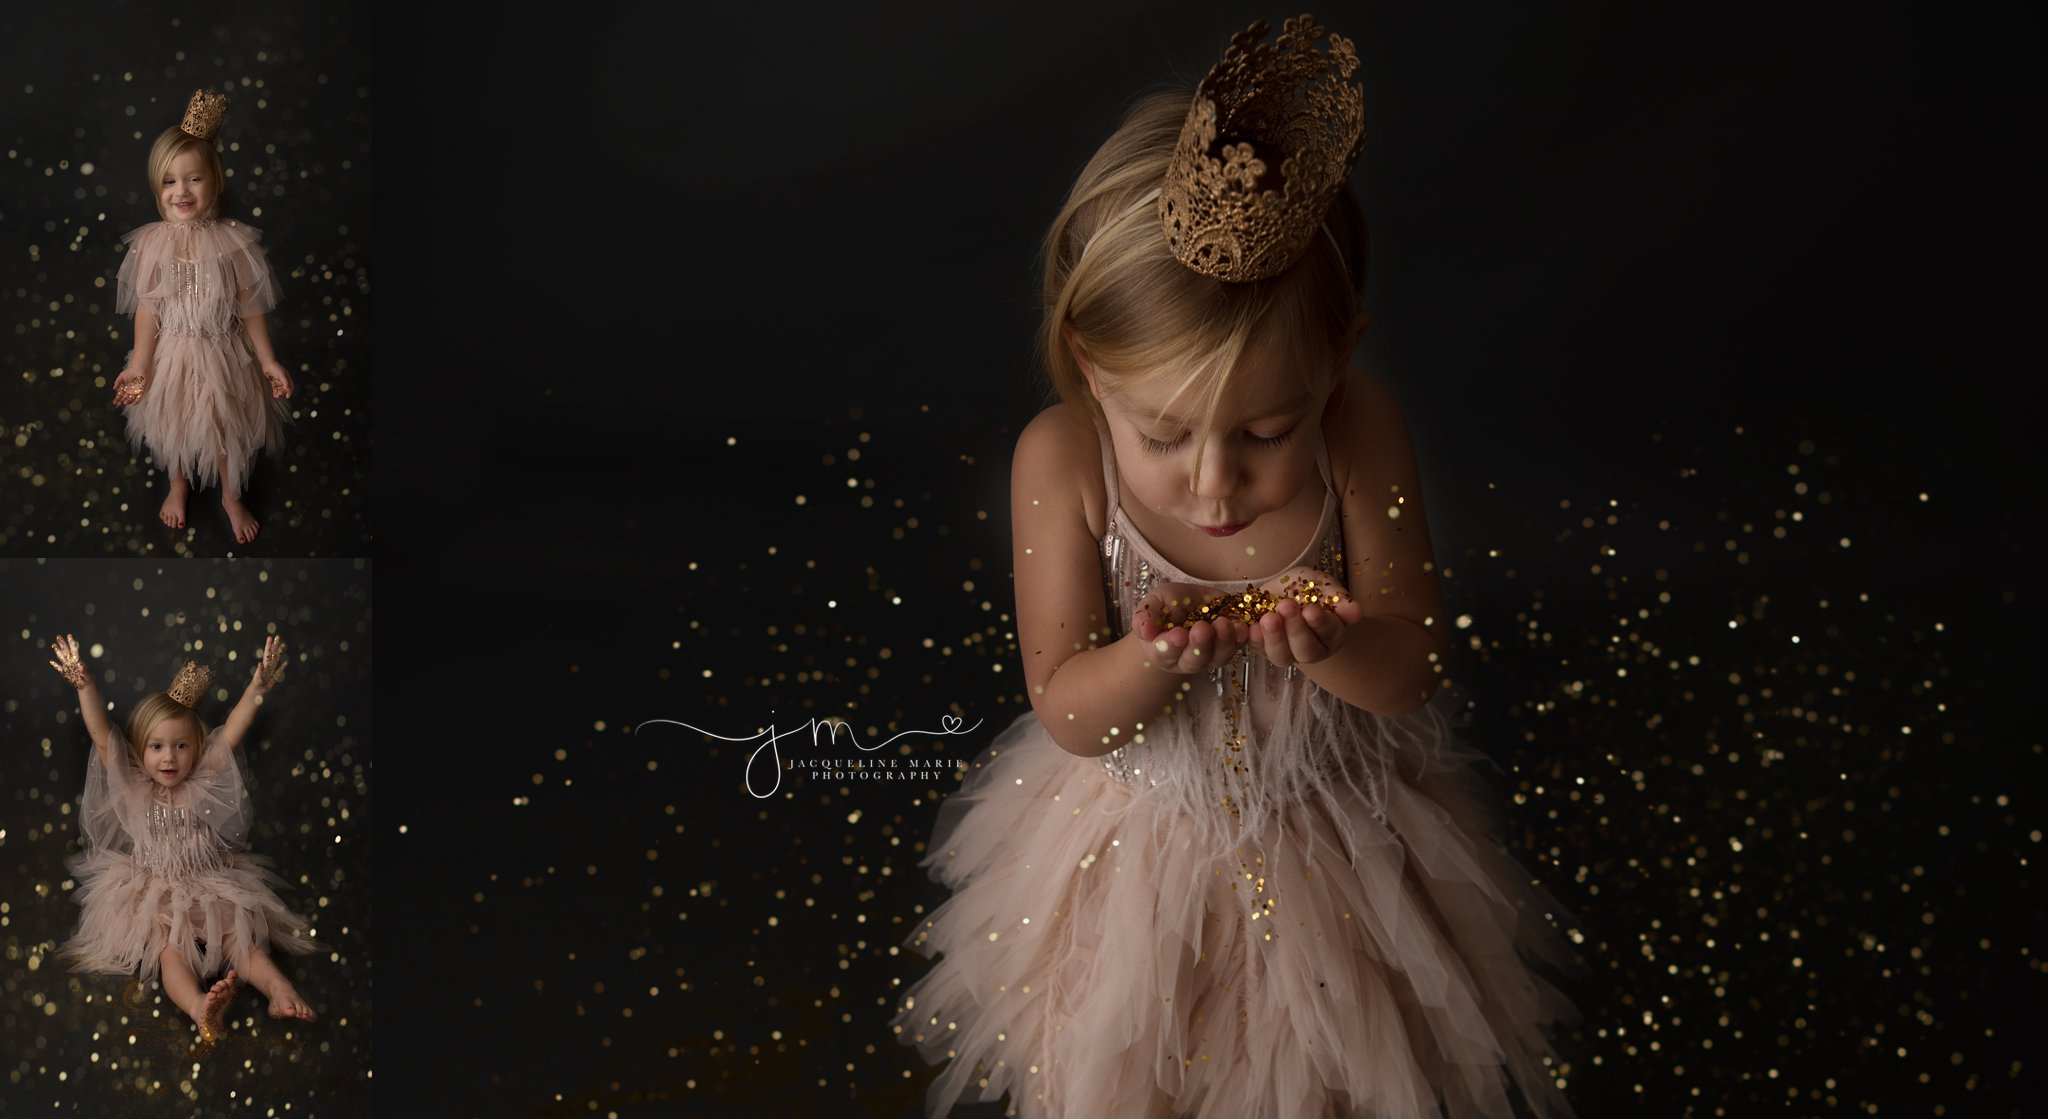 glitter mini photography session with pink dress and gold glitter in columbus ohio to celebrate third birthday, glitter session with tutu du mode dresses